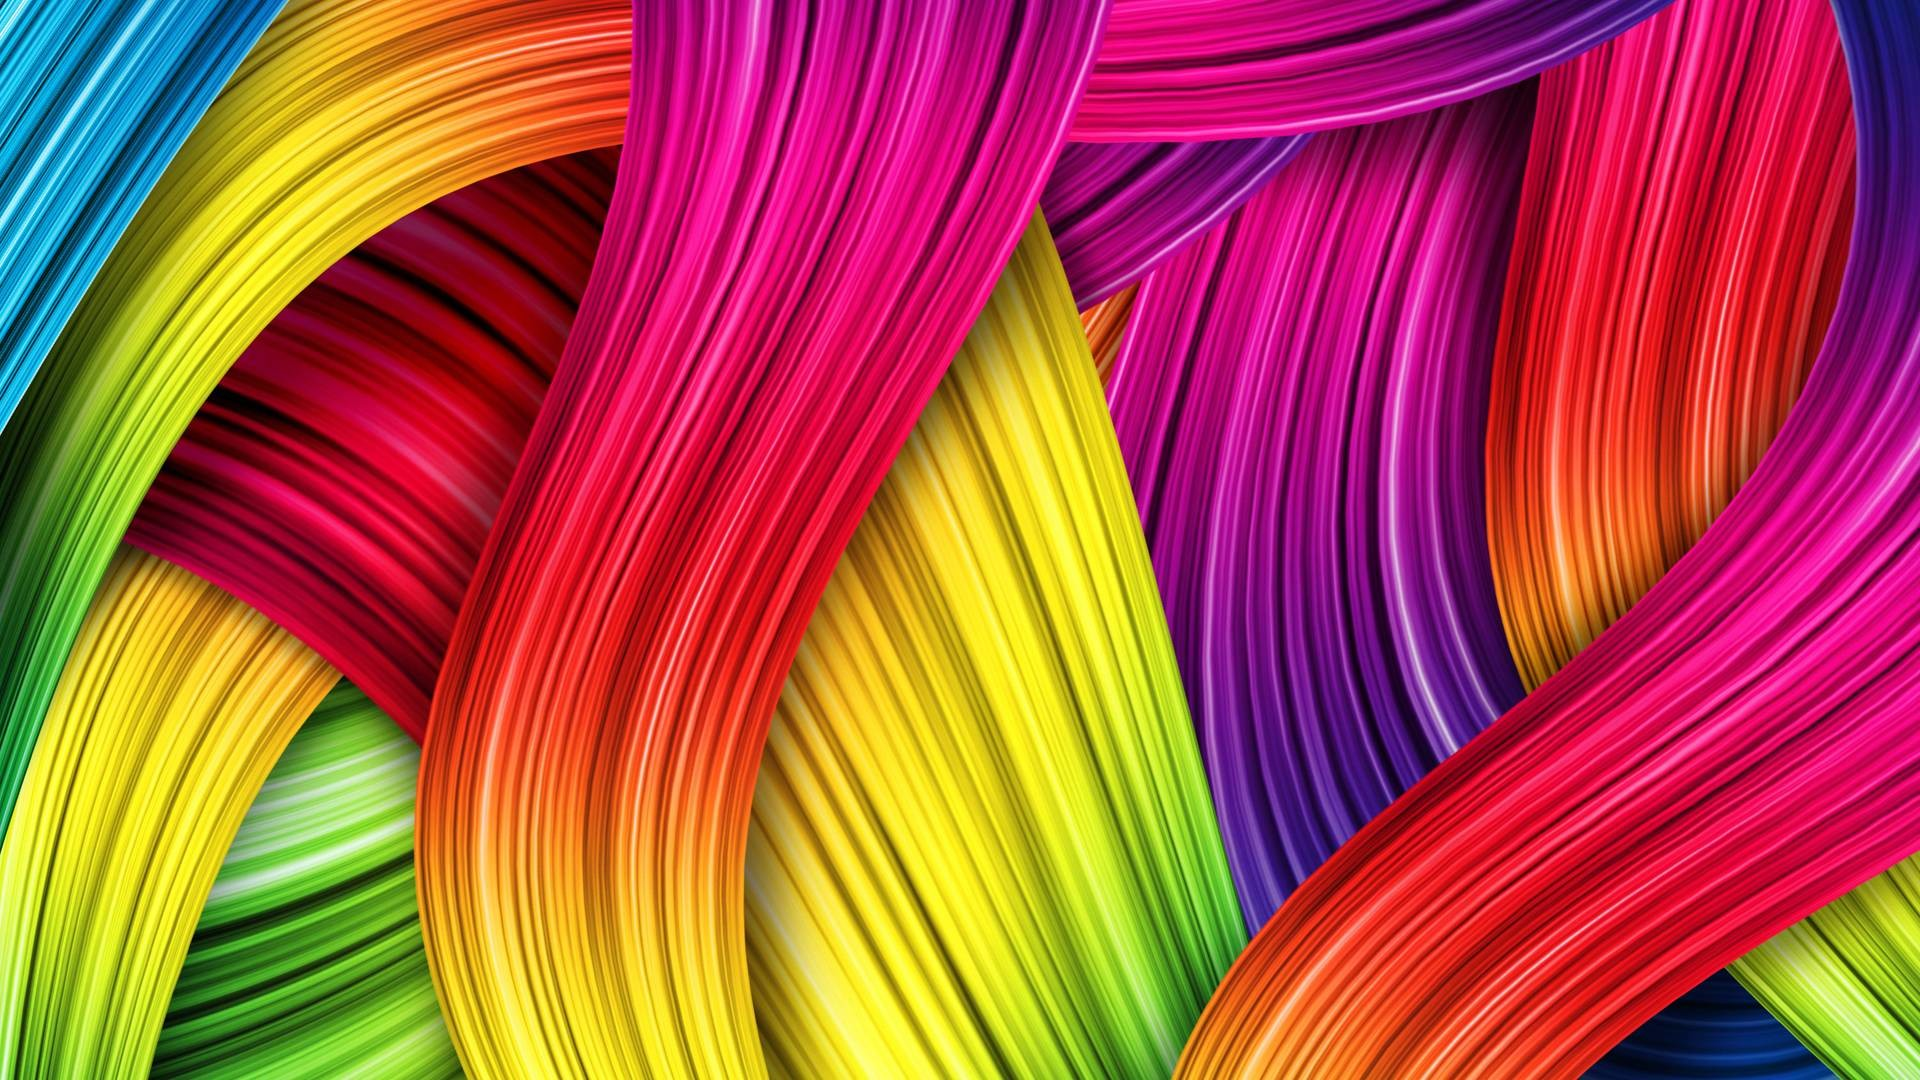 Res: 1920x1080, 3D Cool Colorful Background Wallpaper